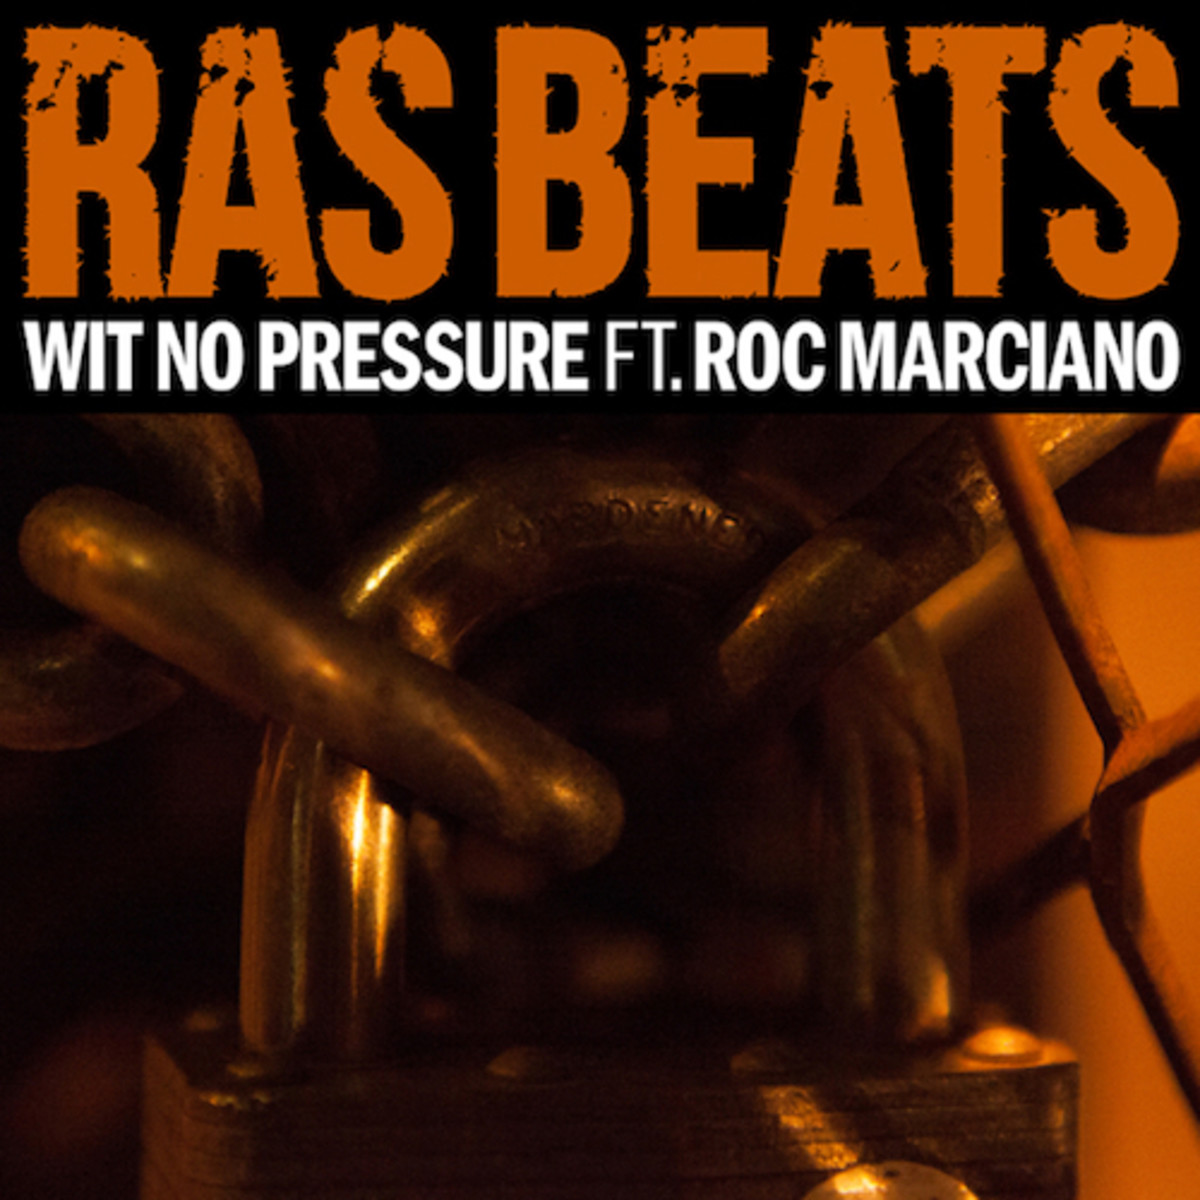 ras-beats-wit-no-pressure.jpg